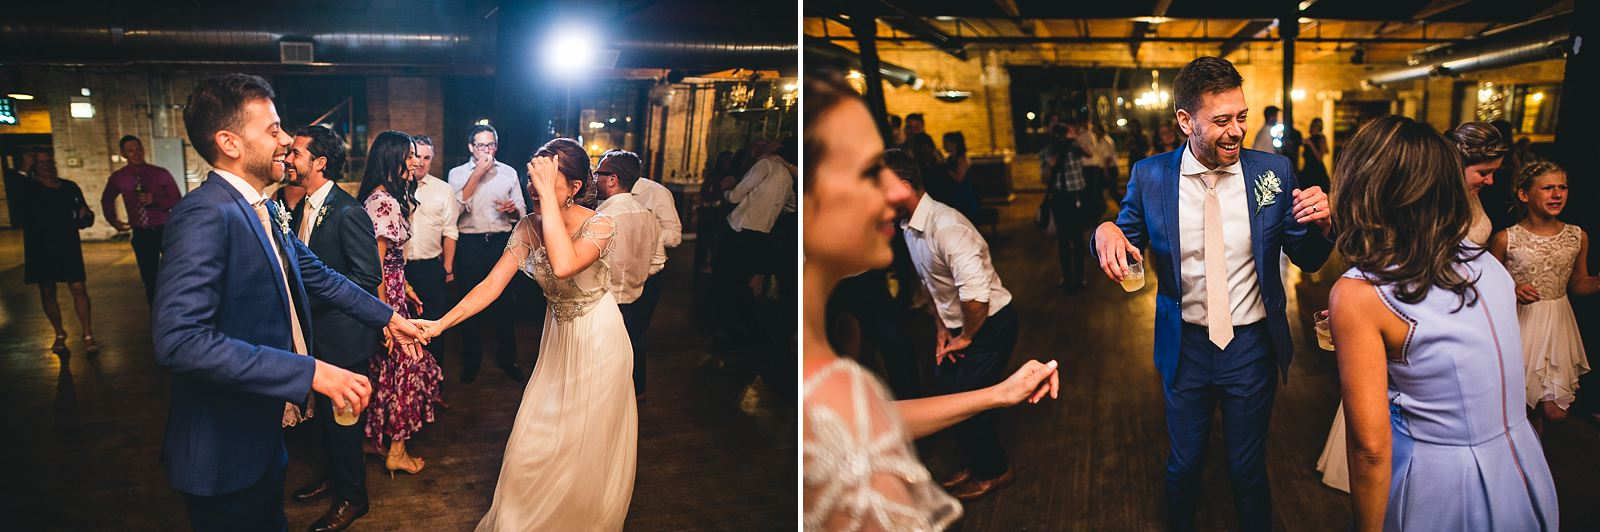 55 dancing at reception at chicago salvage one wedding - Salvage One Wedding // Pearl + Ken